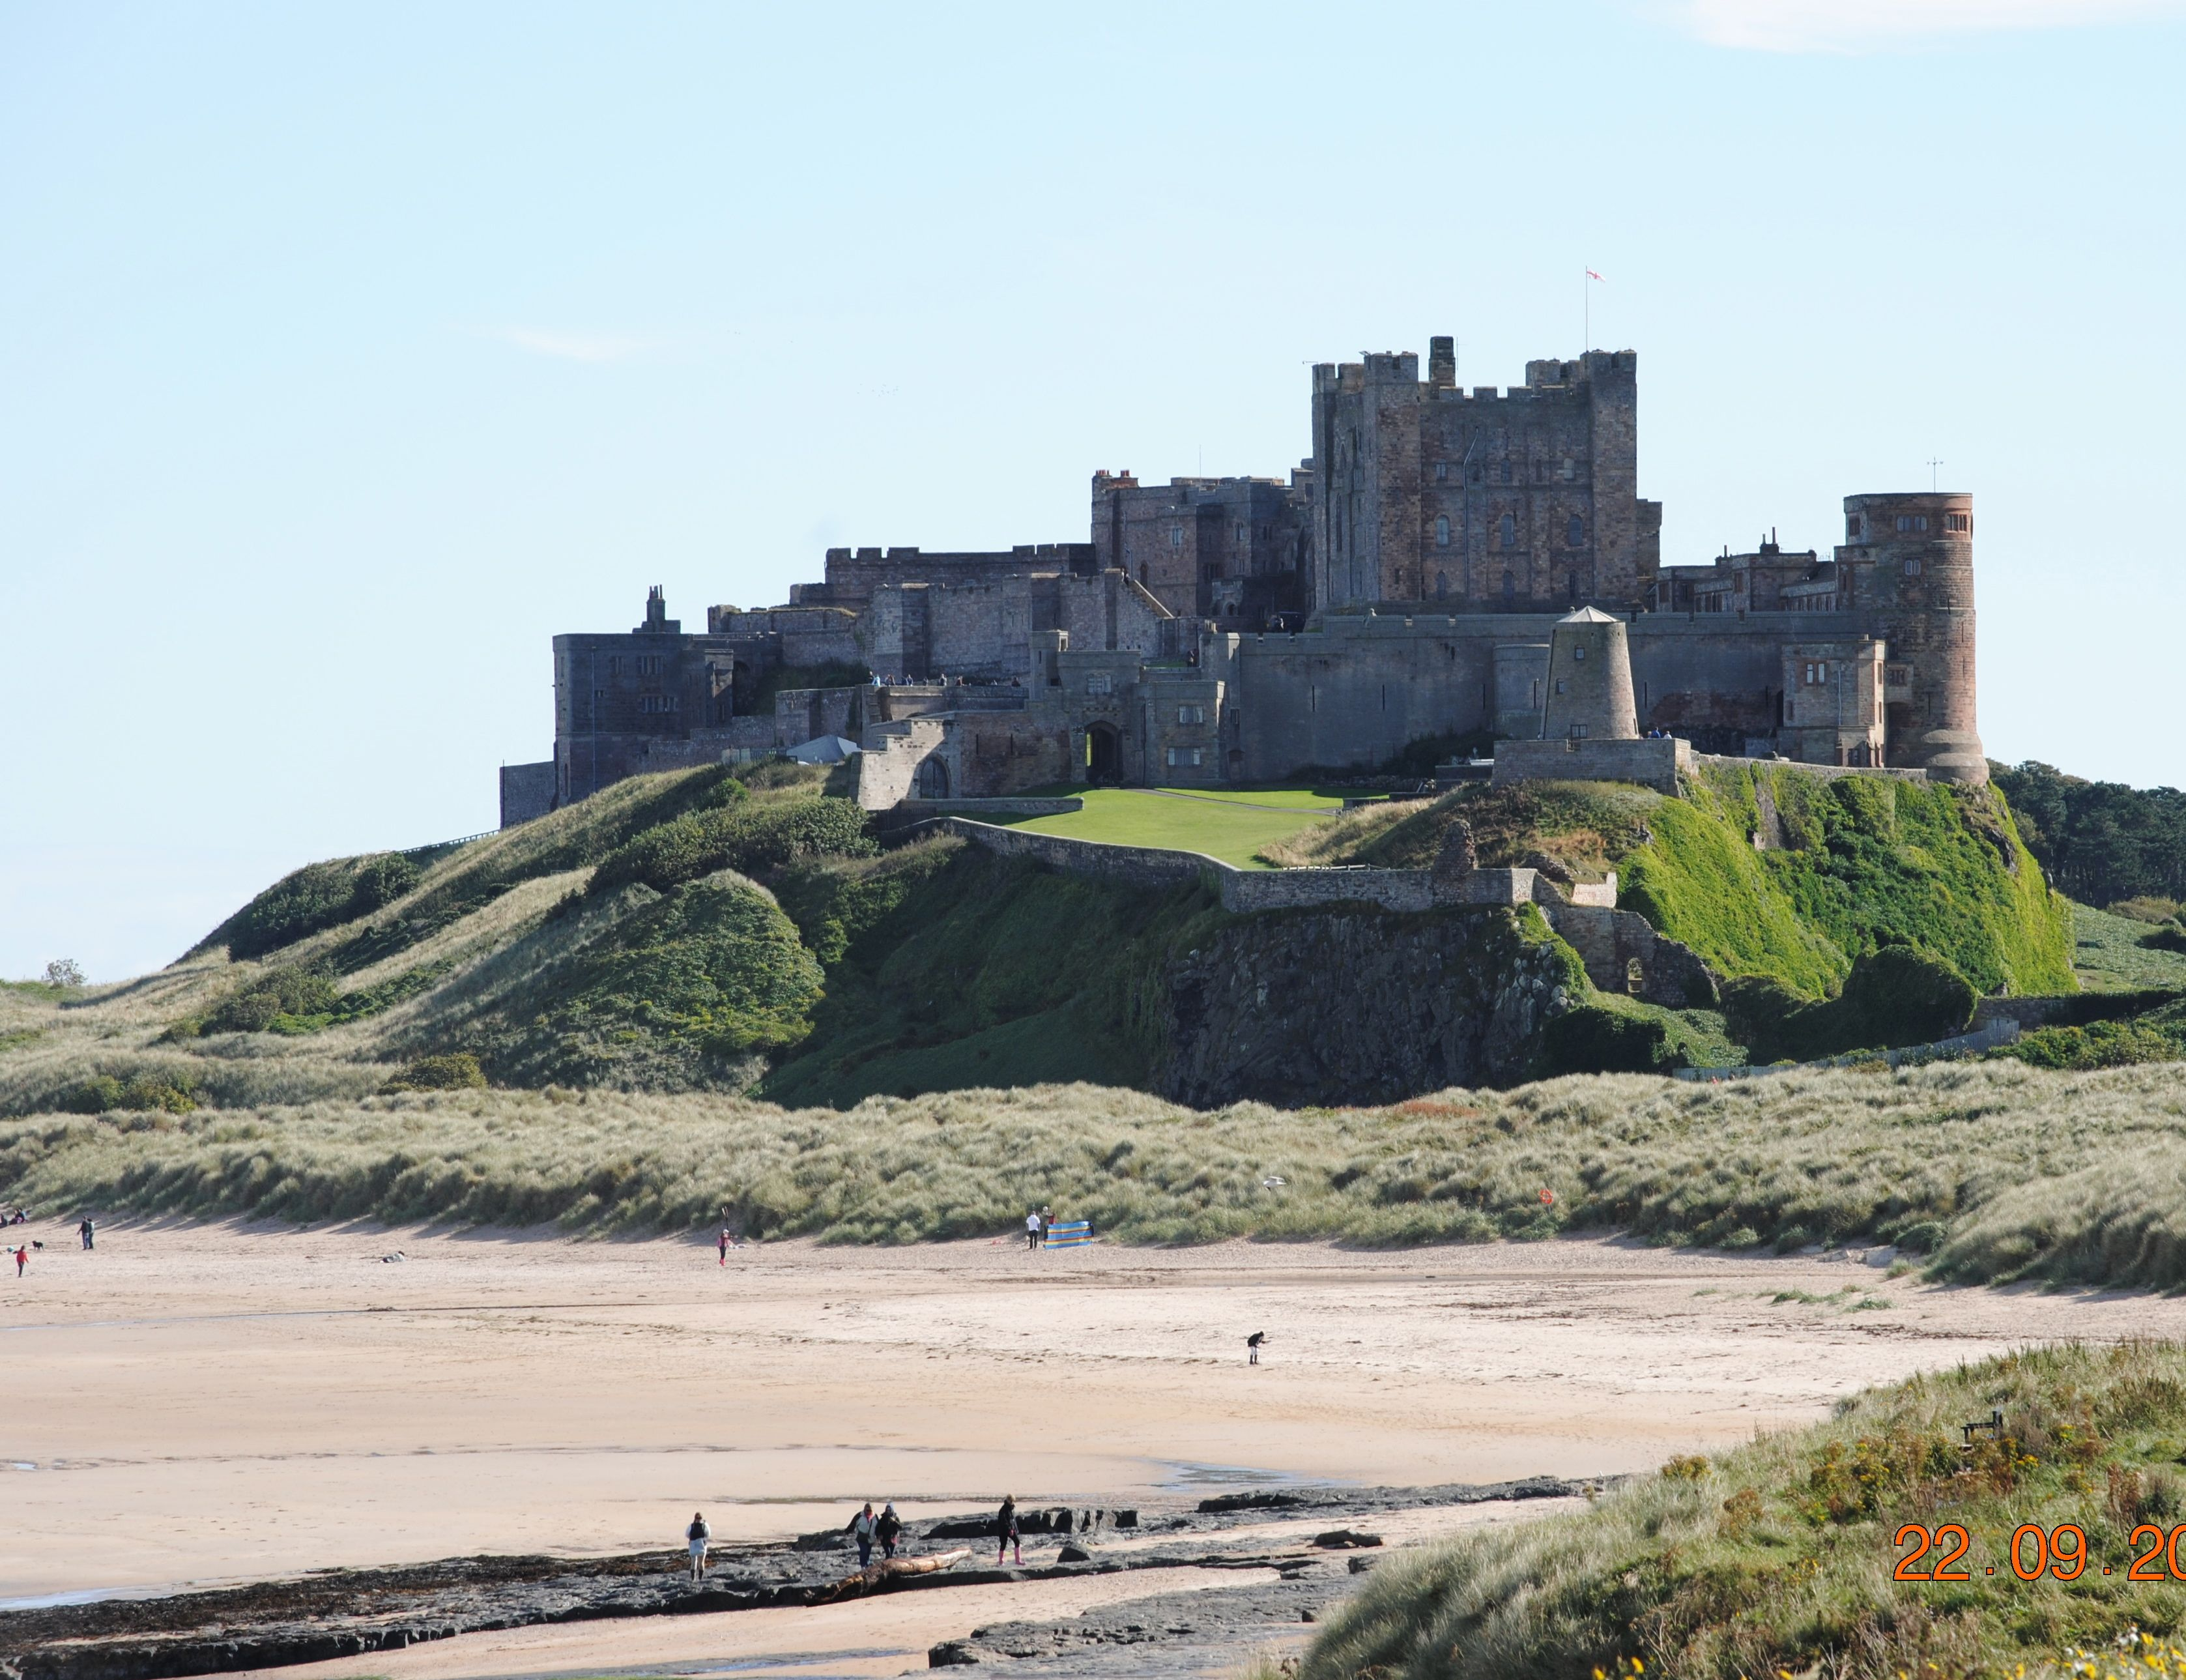 Image courtesy of Bamburgh Castle